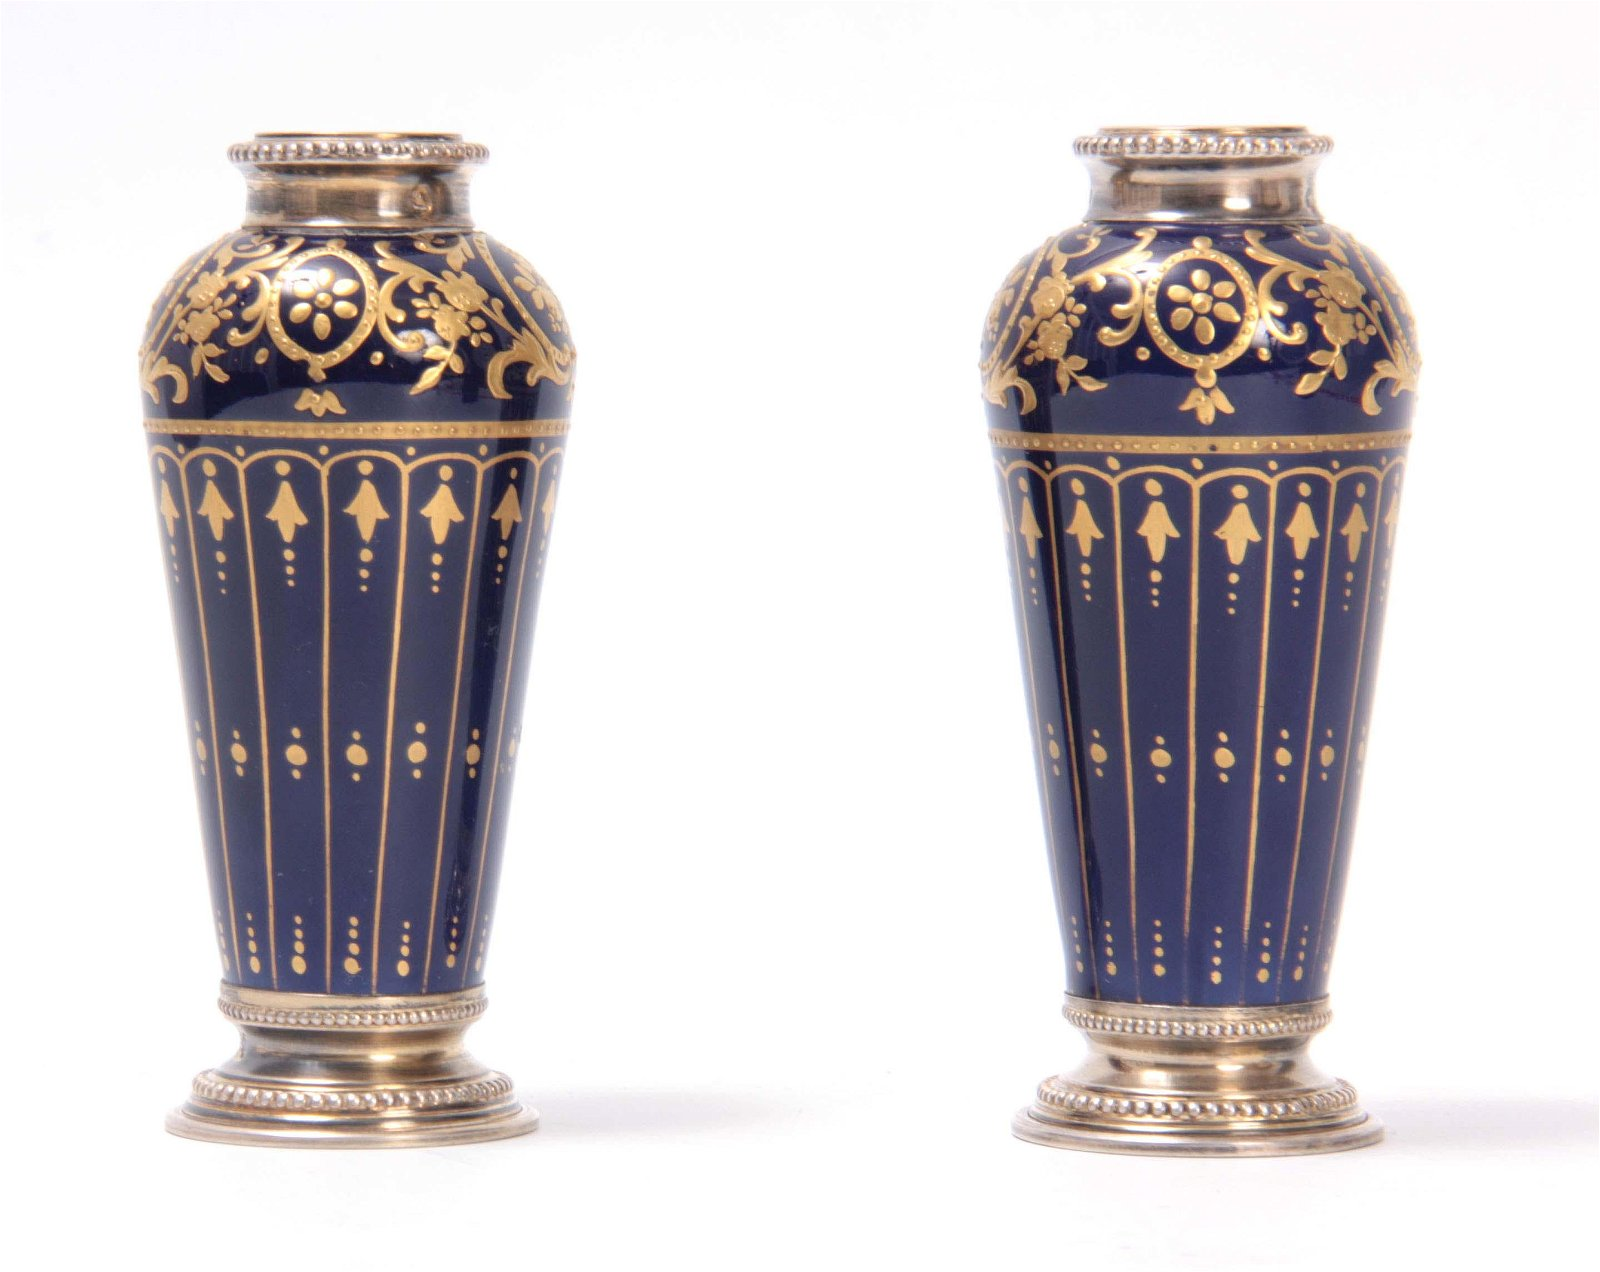 A PAIR OF 19TH CENTURY FRENCH SILVER MOUNTED SEVRE